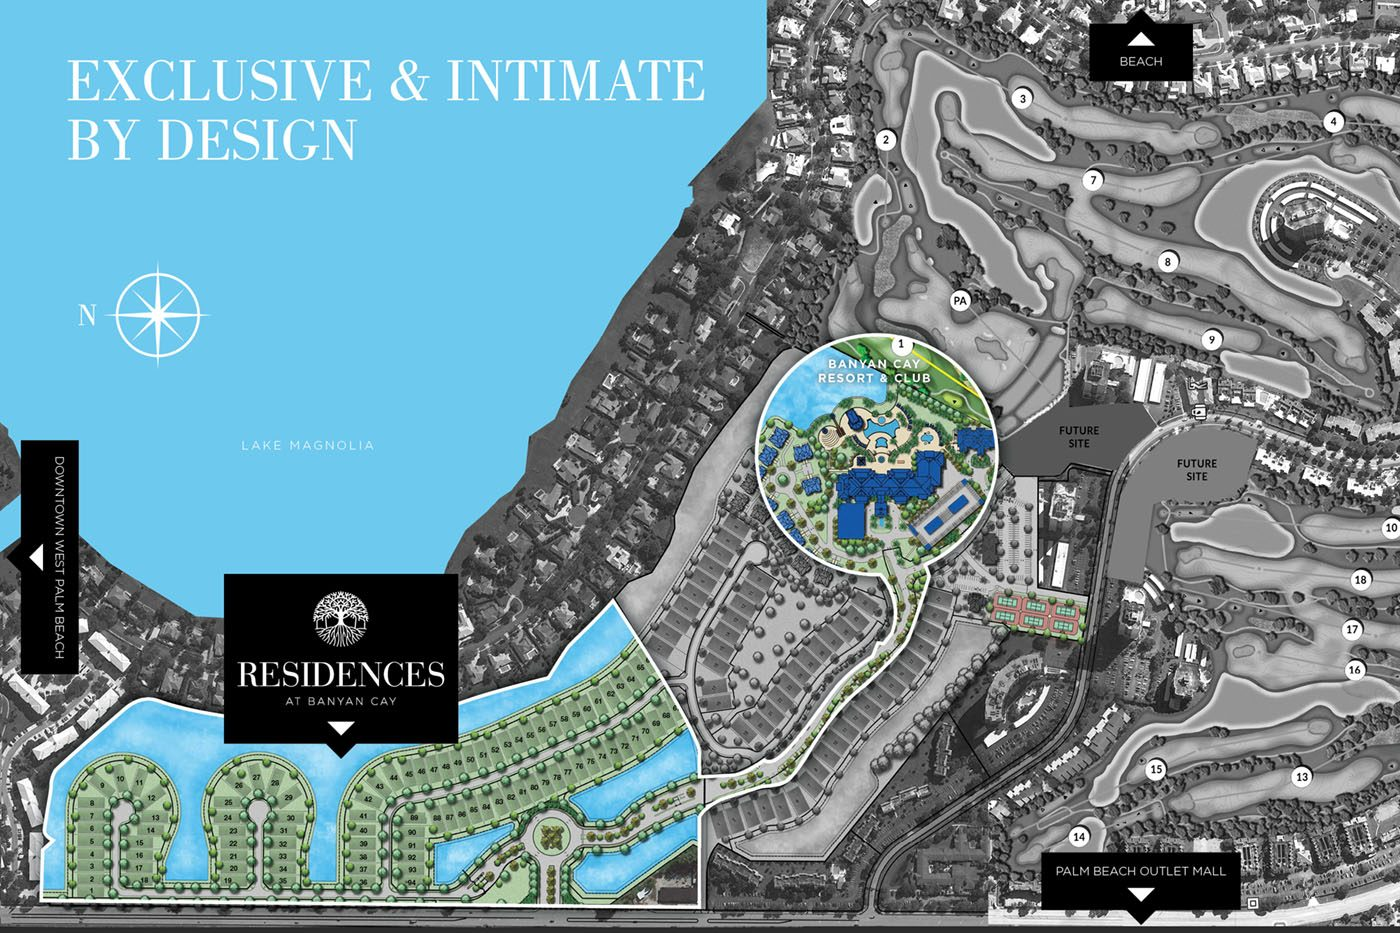 Residences at Banyan Cay Siteplan